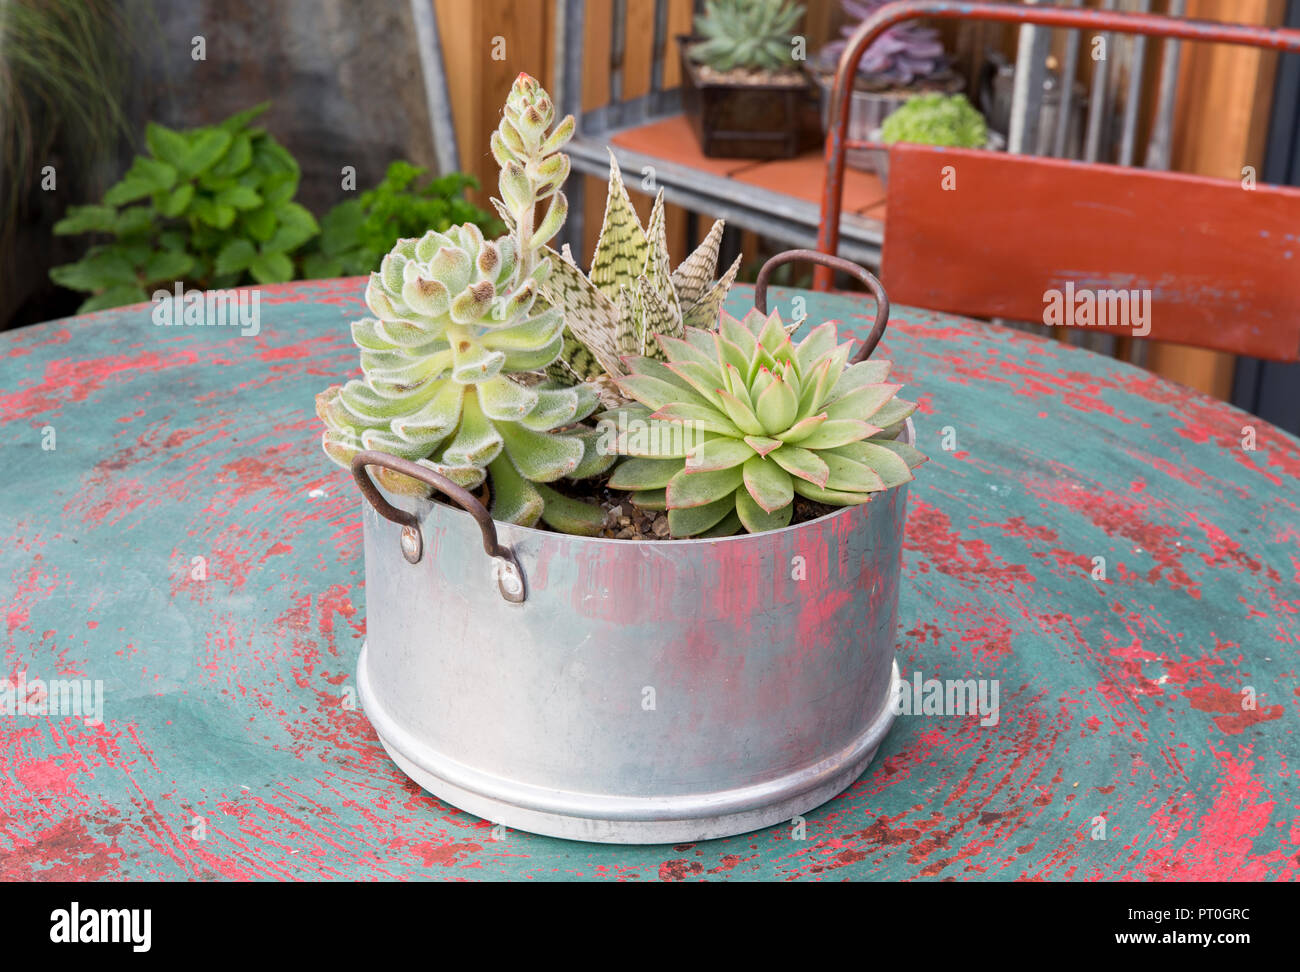 Succulents and sempervivum plants grown in old repurposed recycled cooking pot on outdoor table, unusual containers, Outside No 39 show garden, RHS Ma - Stock Image